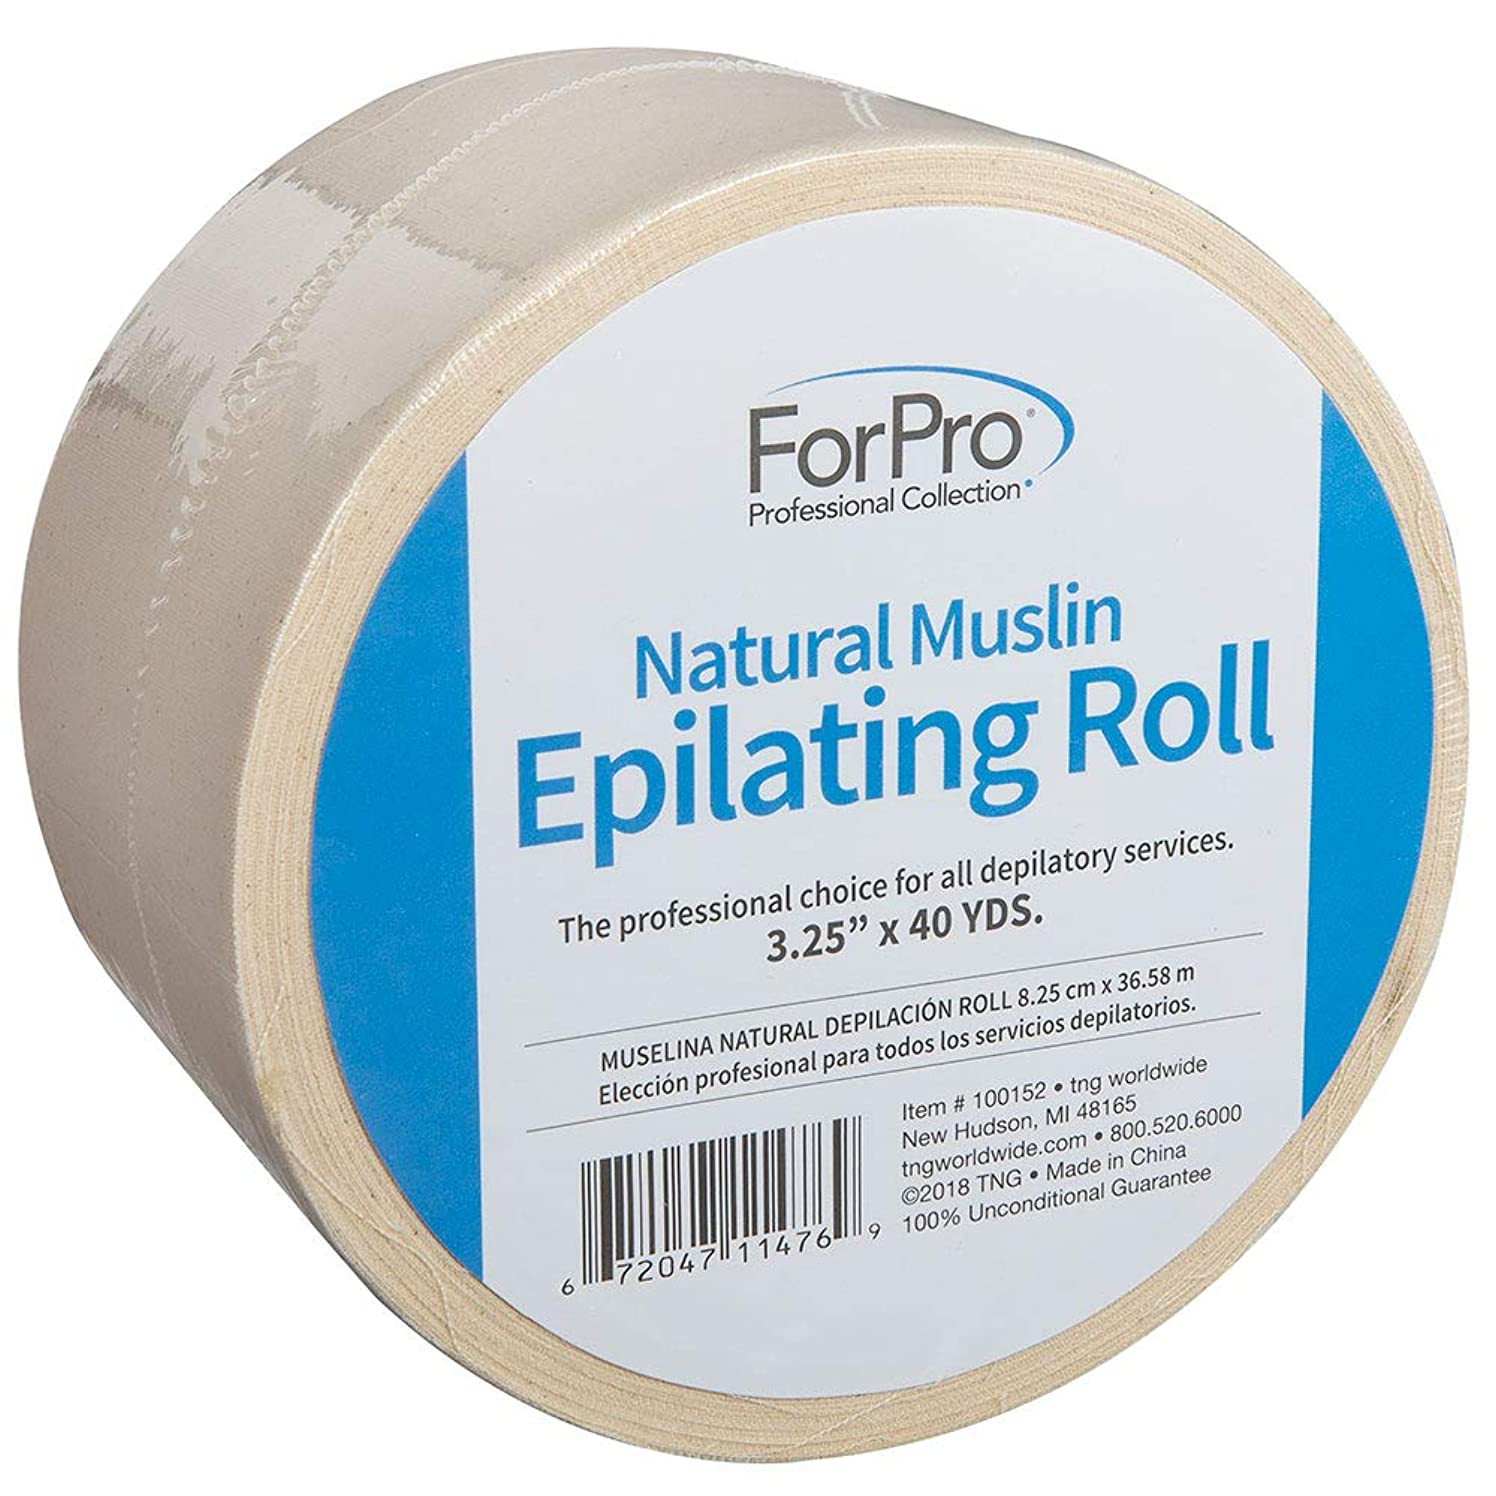 "ForPro Natural Muslin Epilating Roll, Tear-Resistant, for Hair Removal, 3.25"" W x 40 Yds"